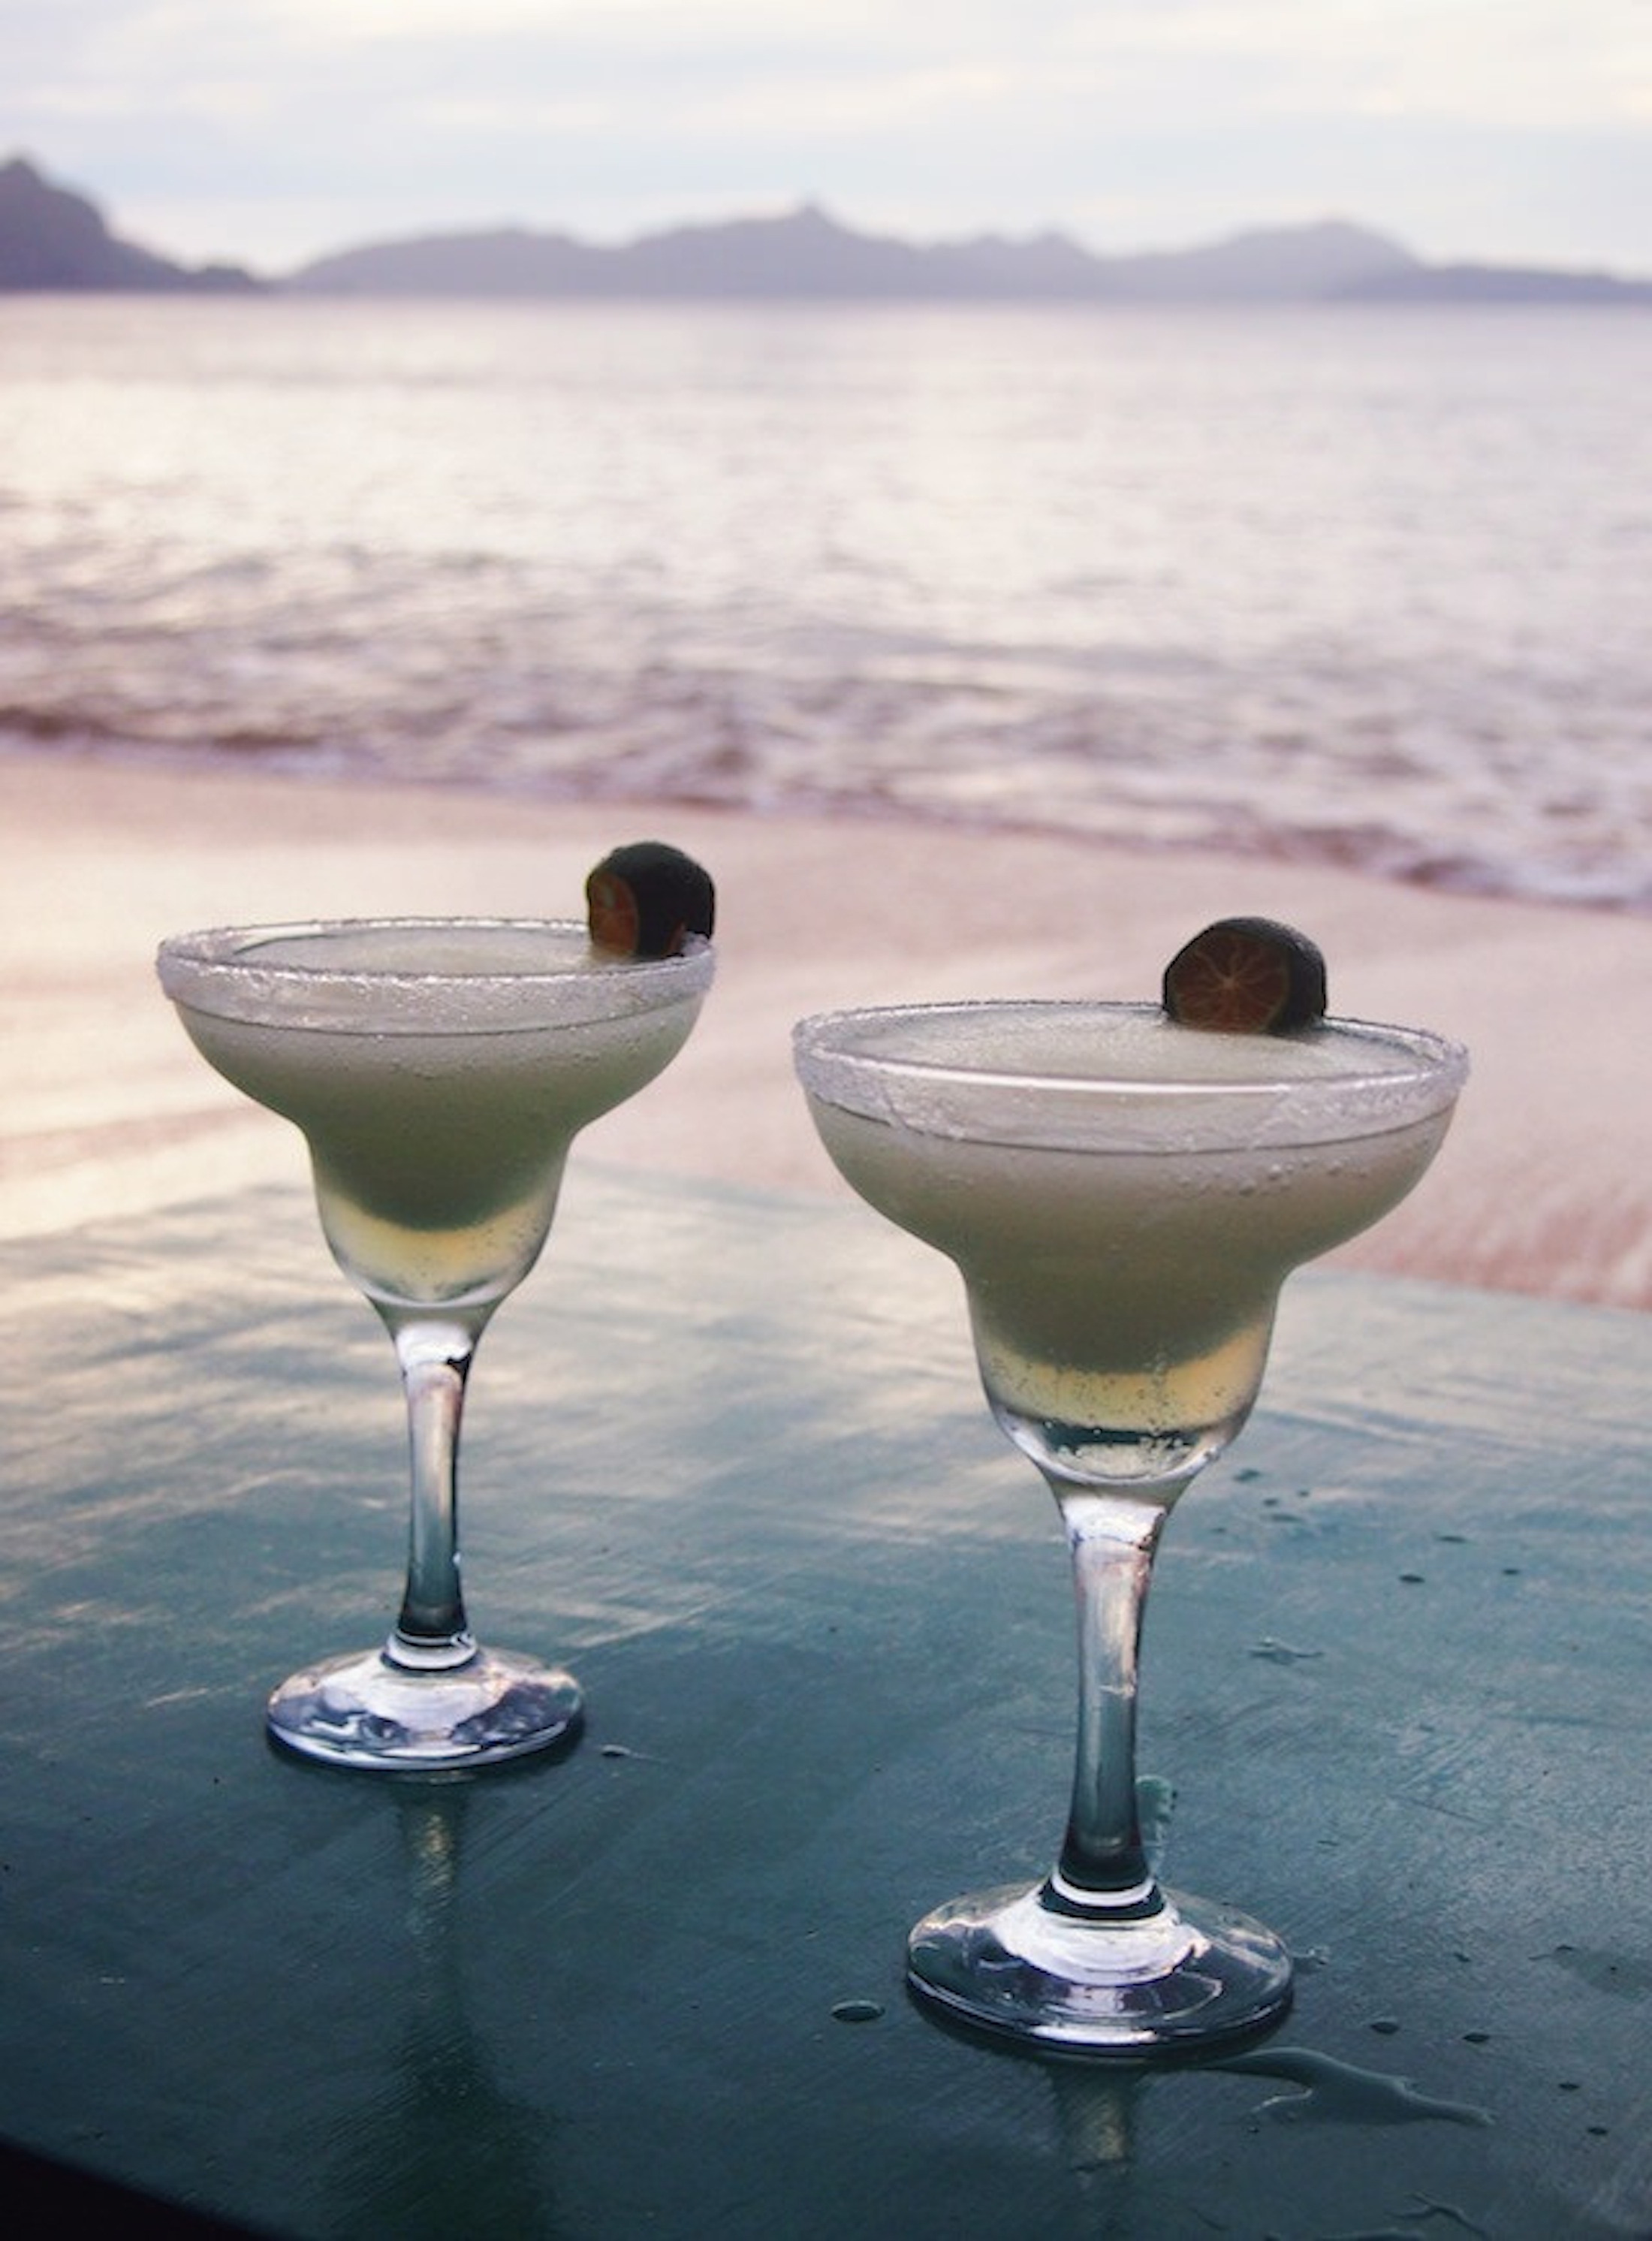 Champagne margaritas on the beach. (currystrumpet/Flickr creative commons)